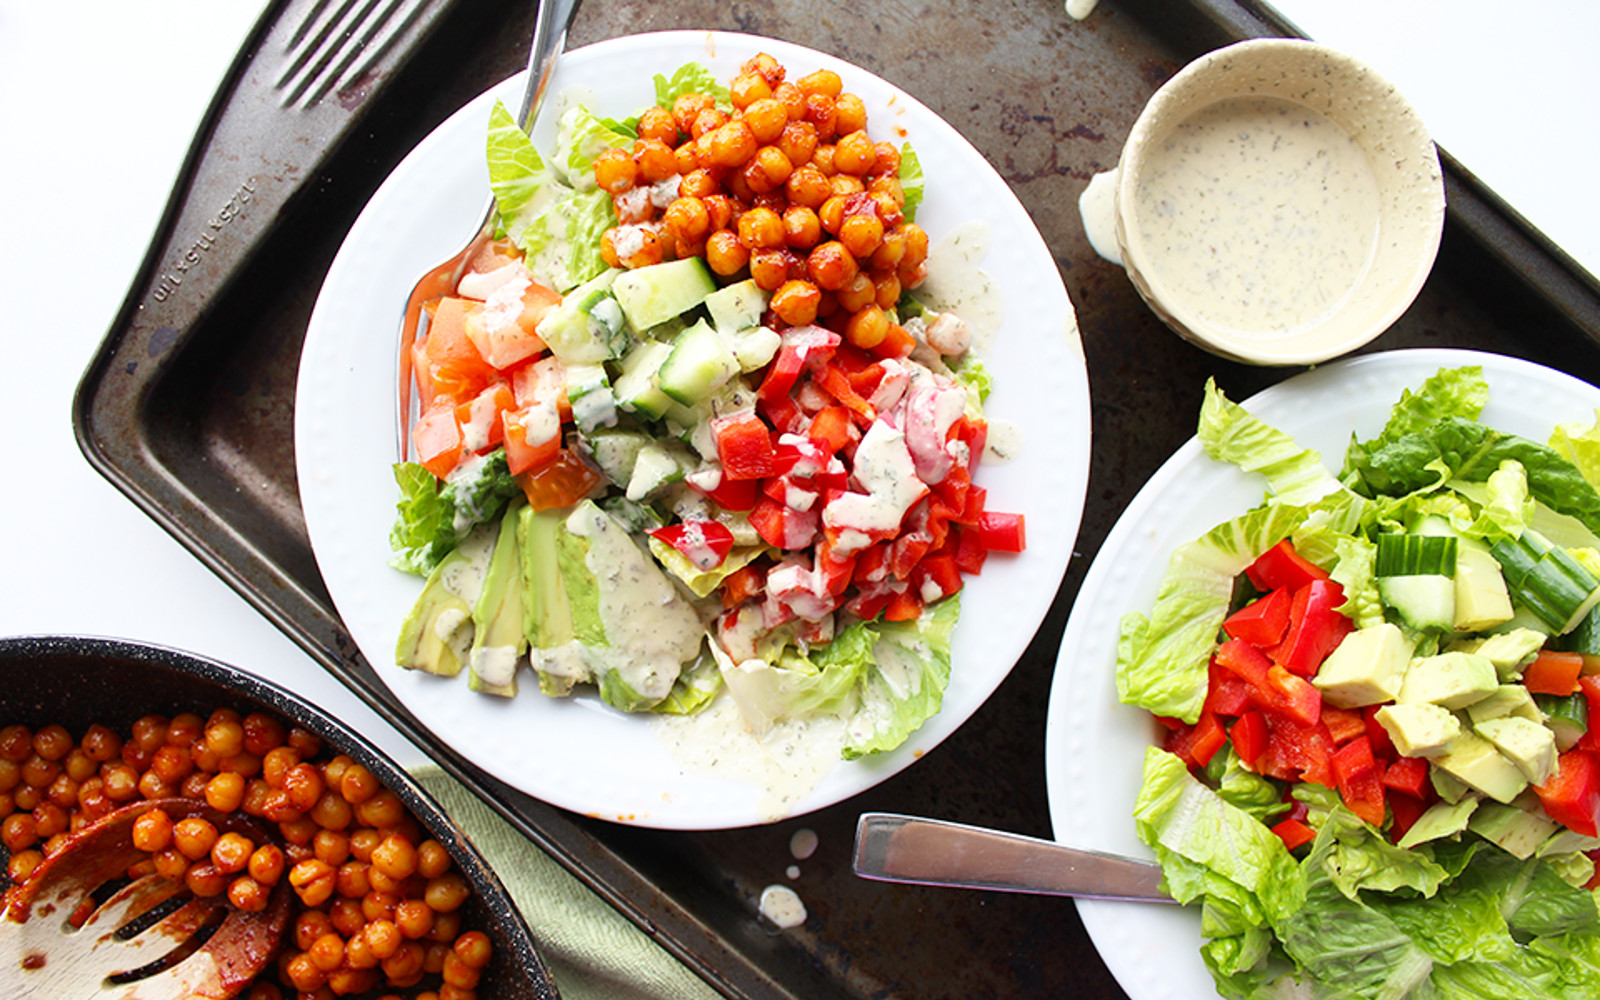 Barbecue Chickpea Ranch Salad